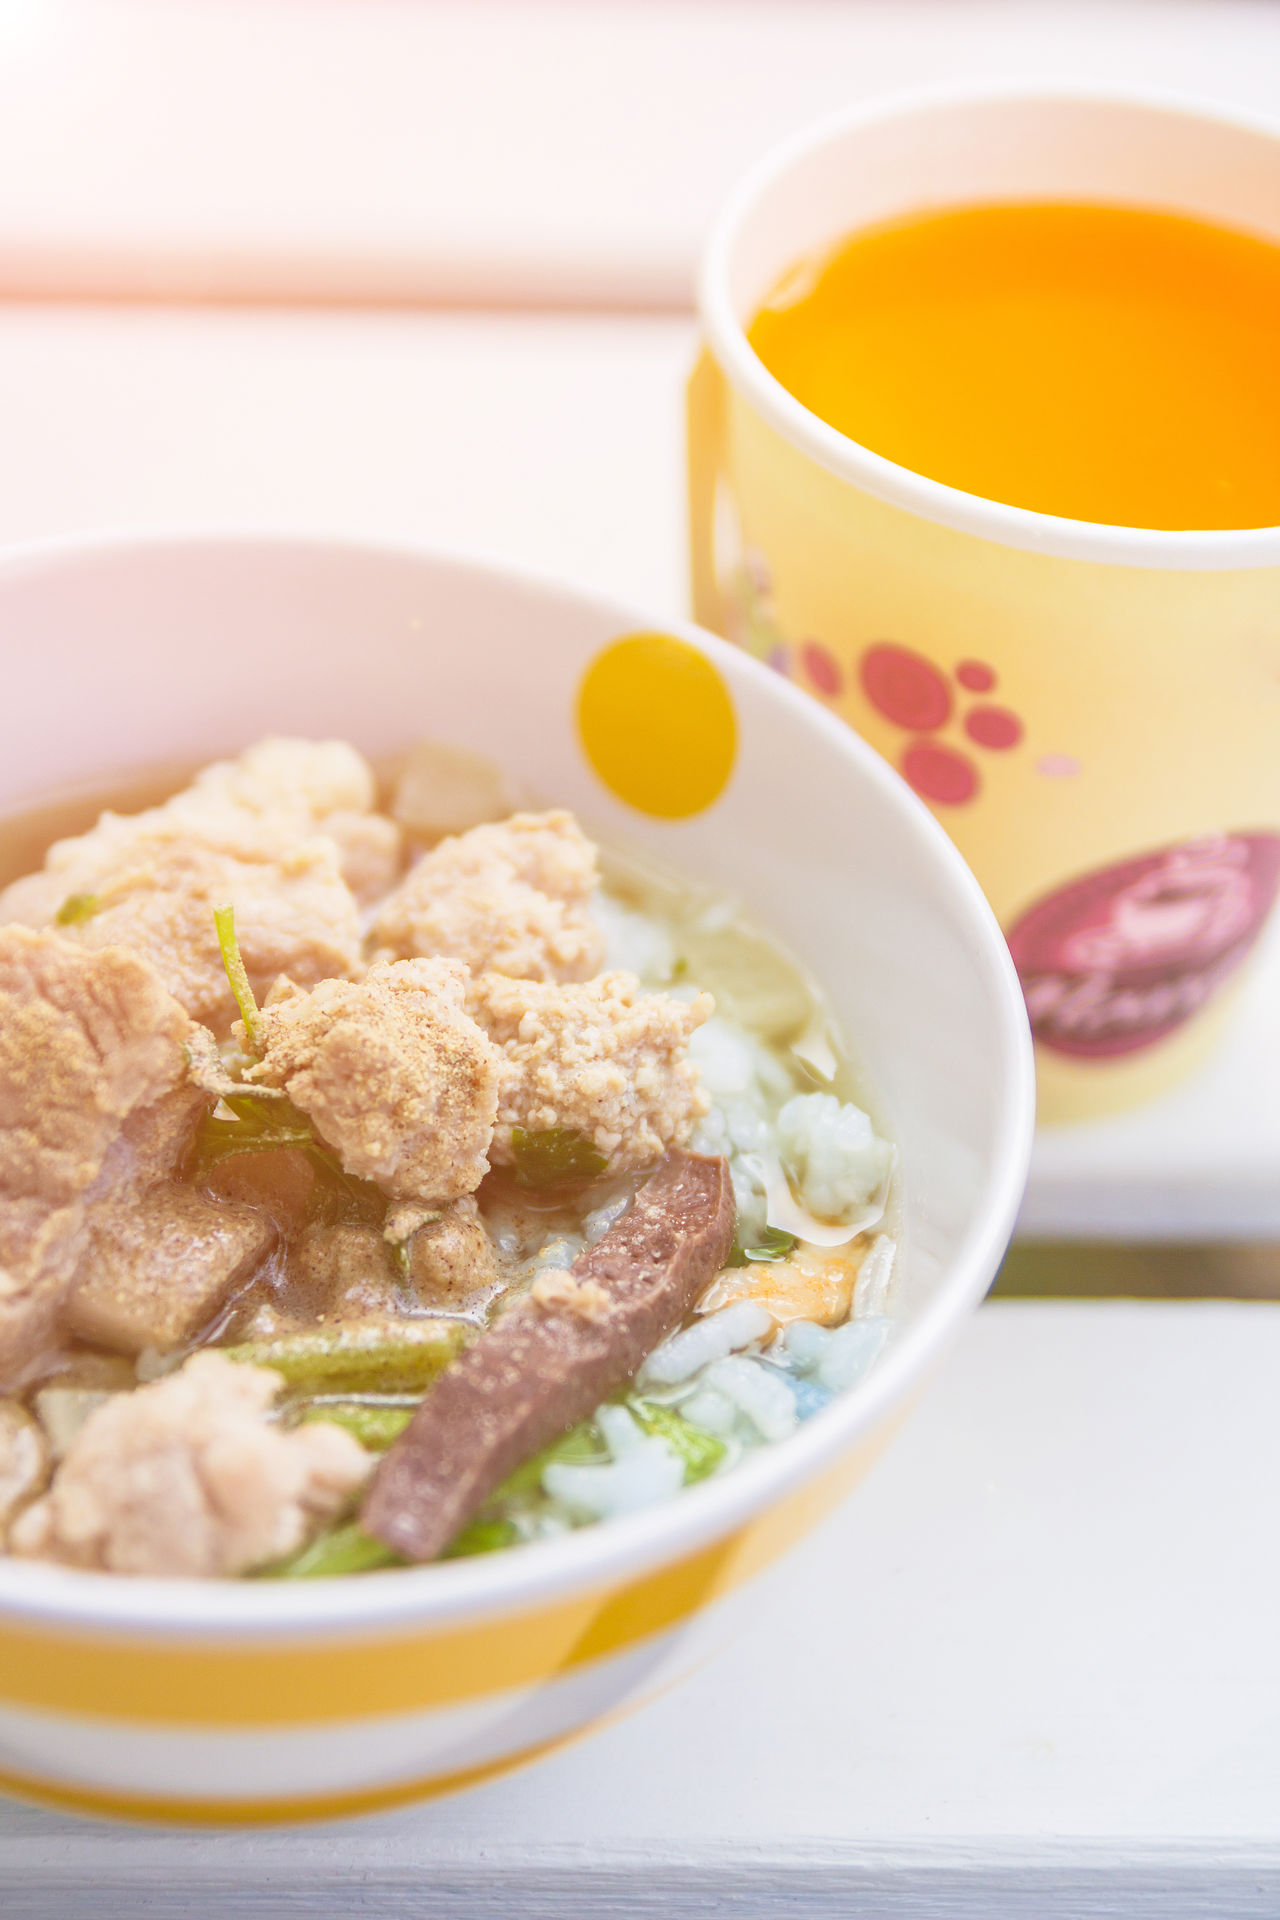 Asian Food Beverage Bowl Breakfast Chinese Food Close-up Congee Drink Food Food And Drink Glass Healthy Eating Homemade Meal Meal Orange Juice  Pork Porridge Ready-to-eat Refreshment Rice Serving Size Sick Soup Thai Food